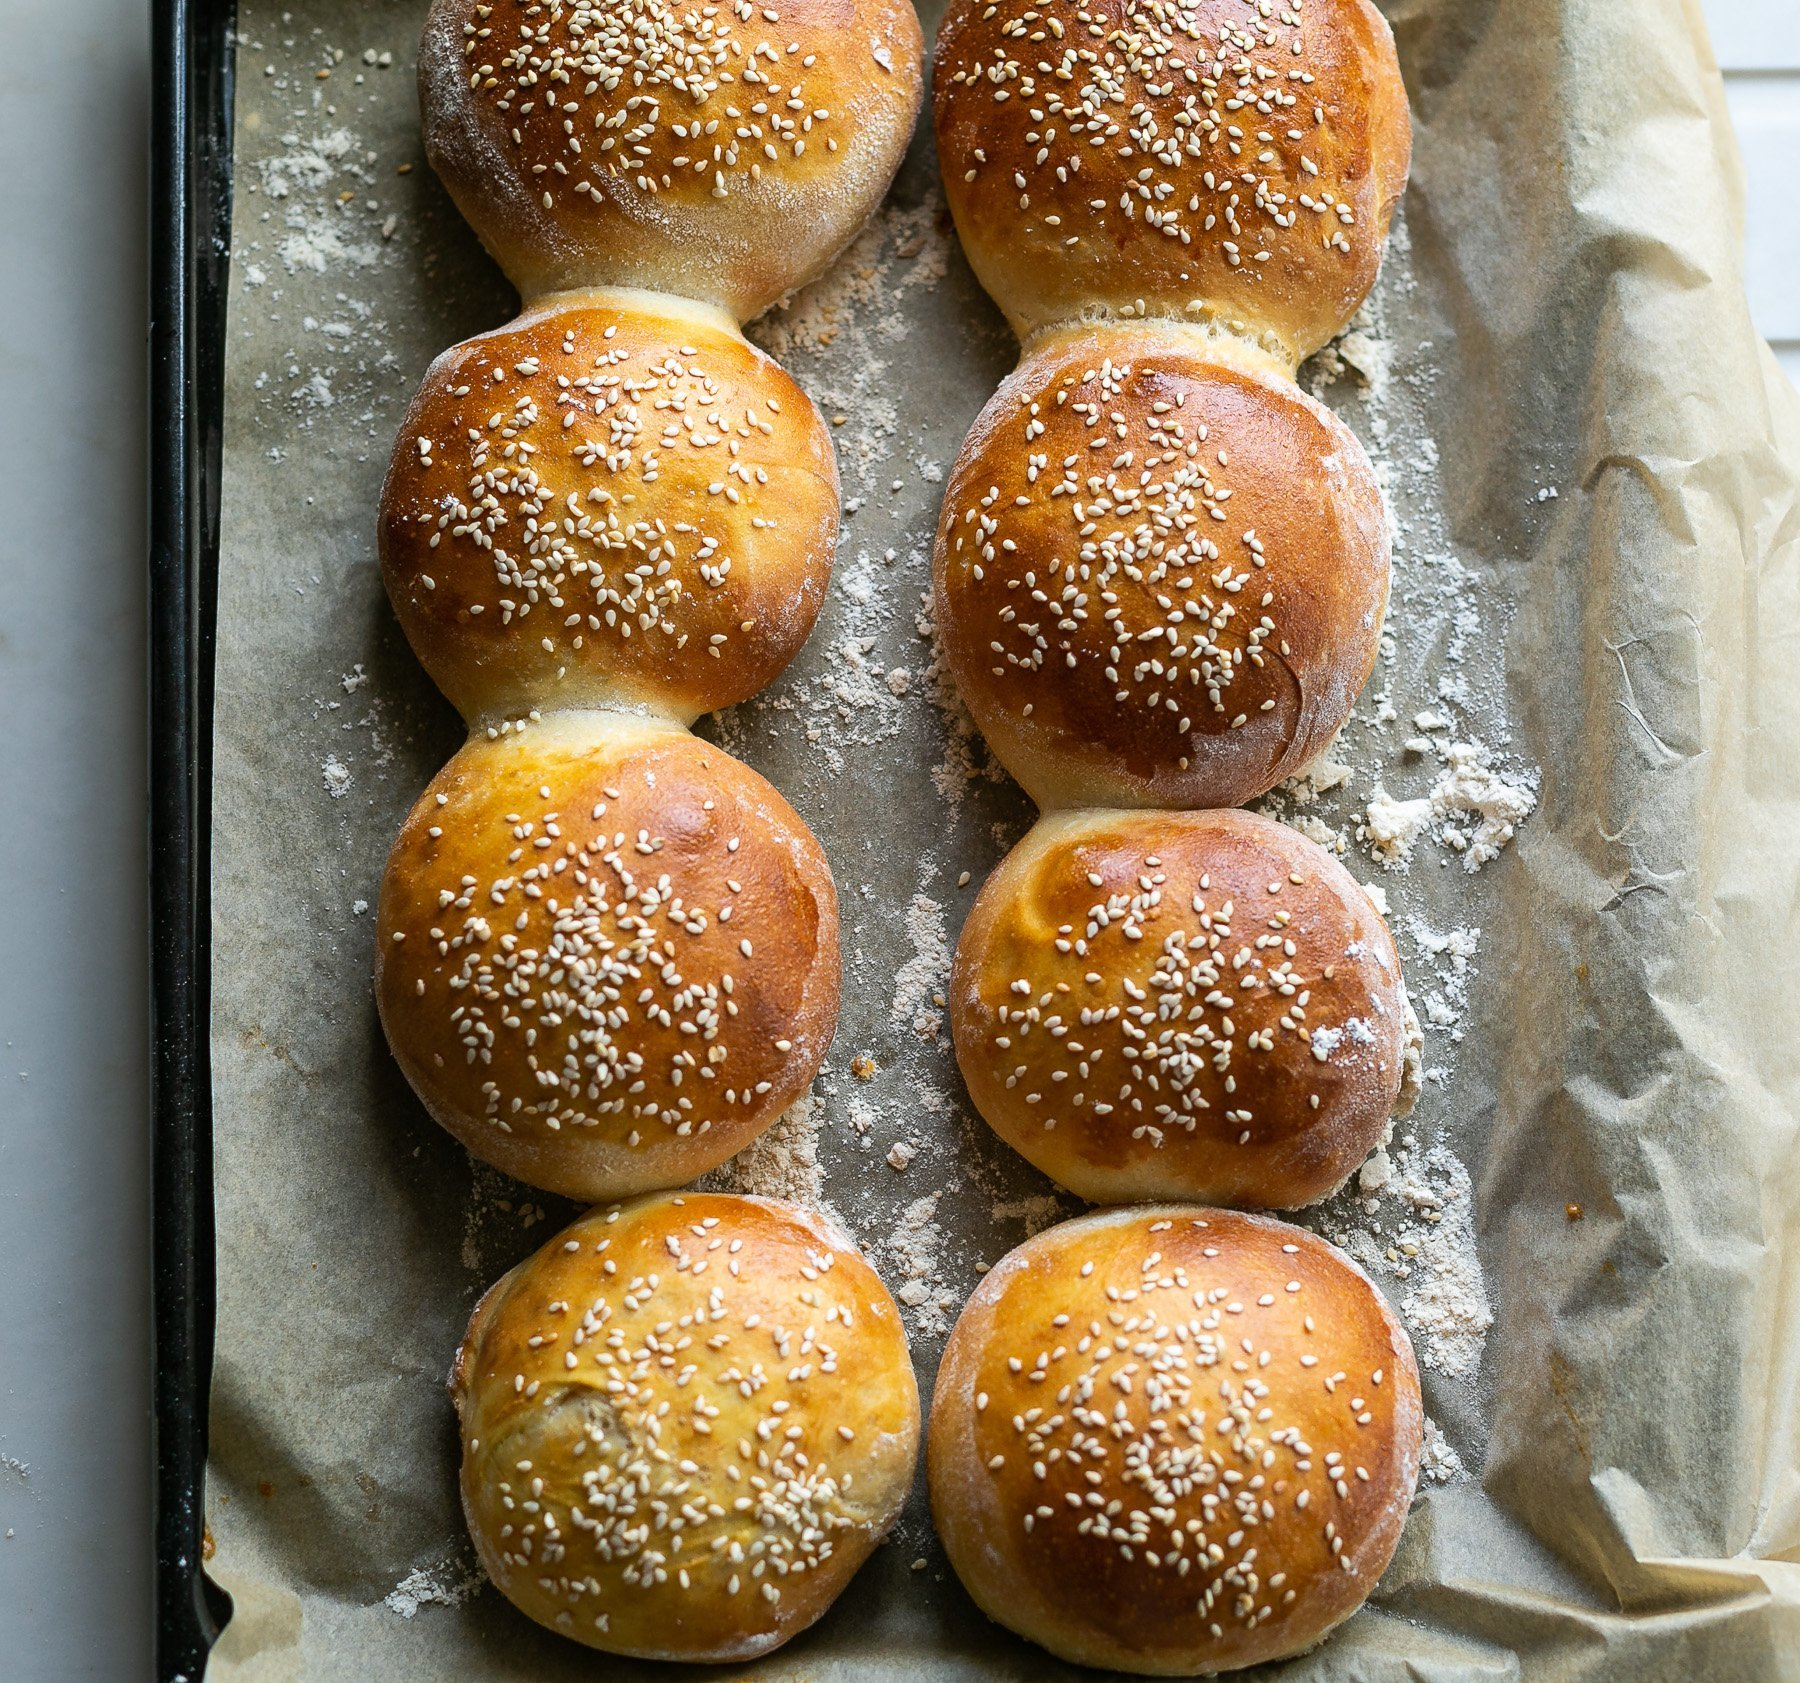 freshly baked brioche burger buns on a baking tray